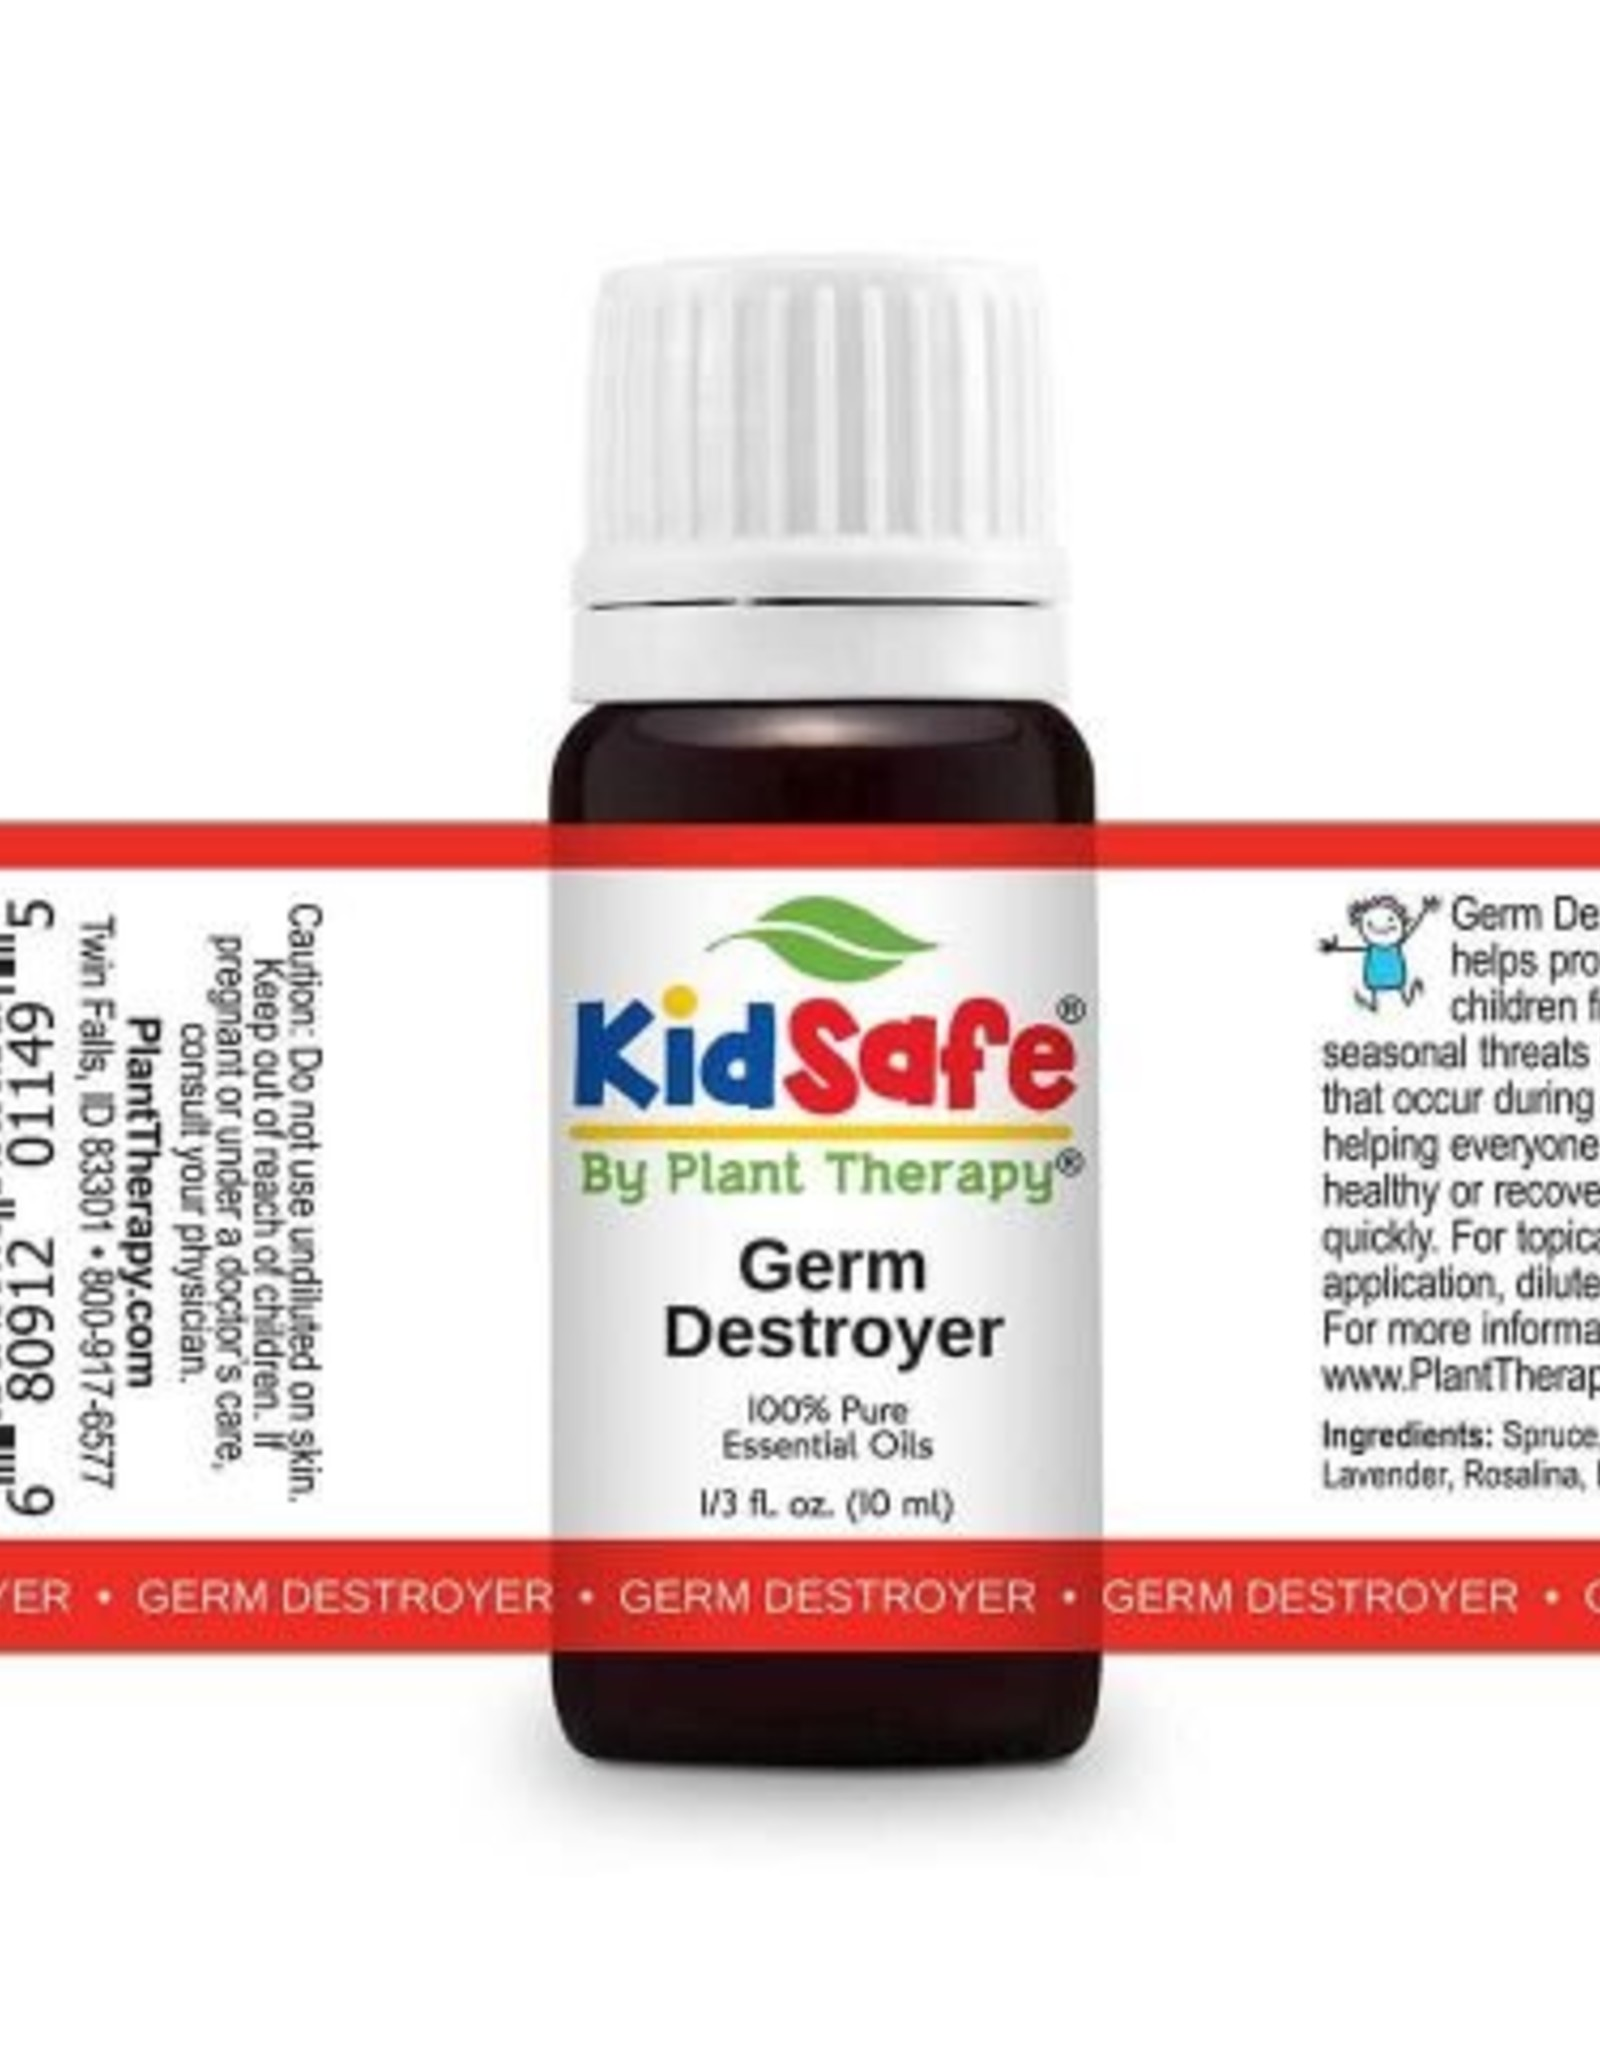 Plant Therapy Kid Safe Essential Oil- Germ Destroyer